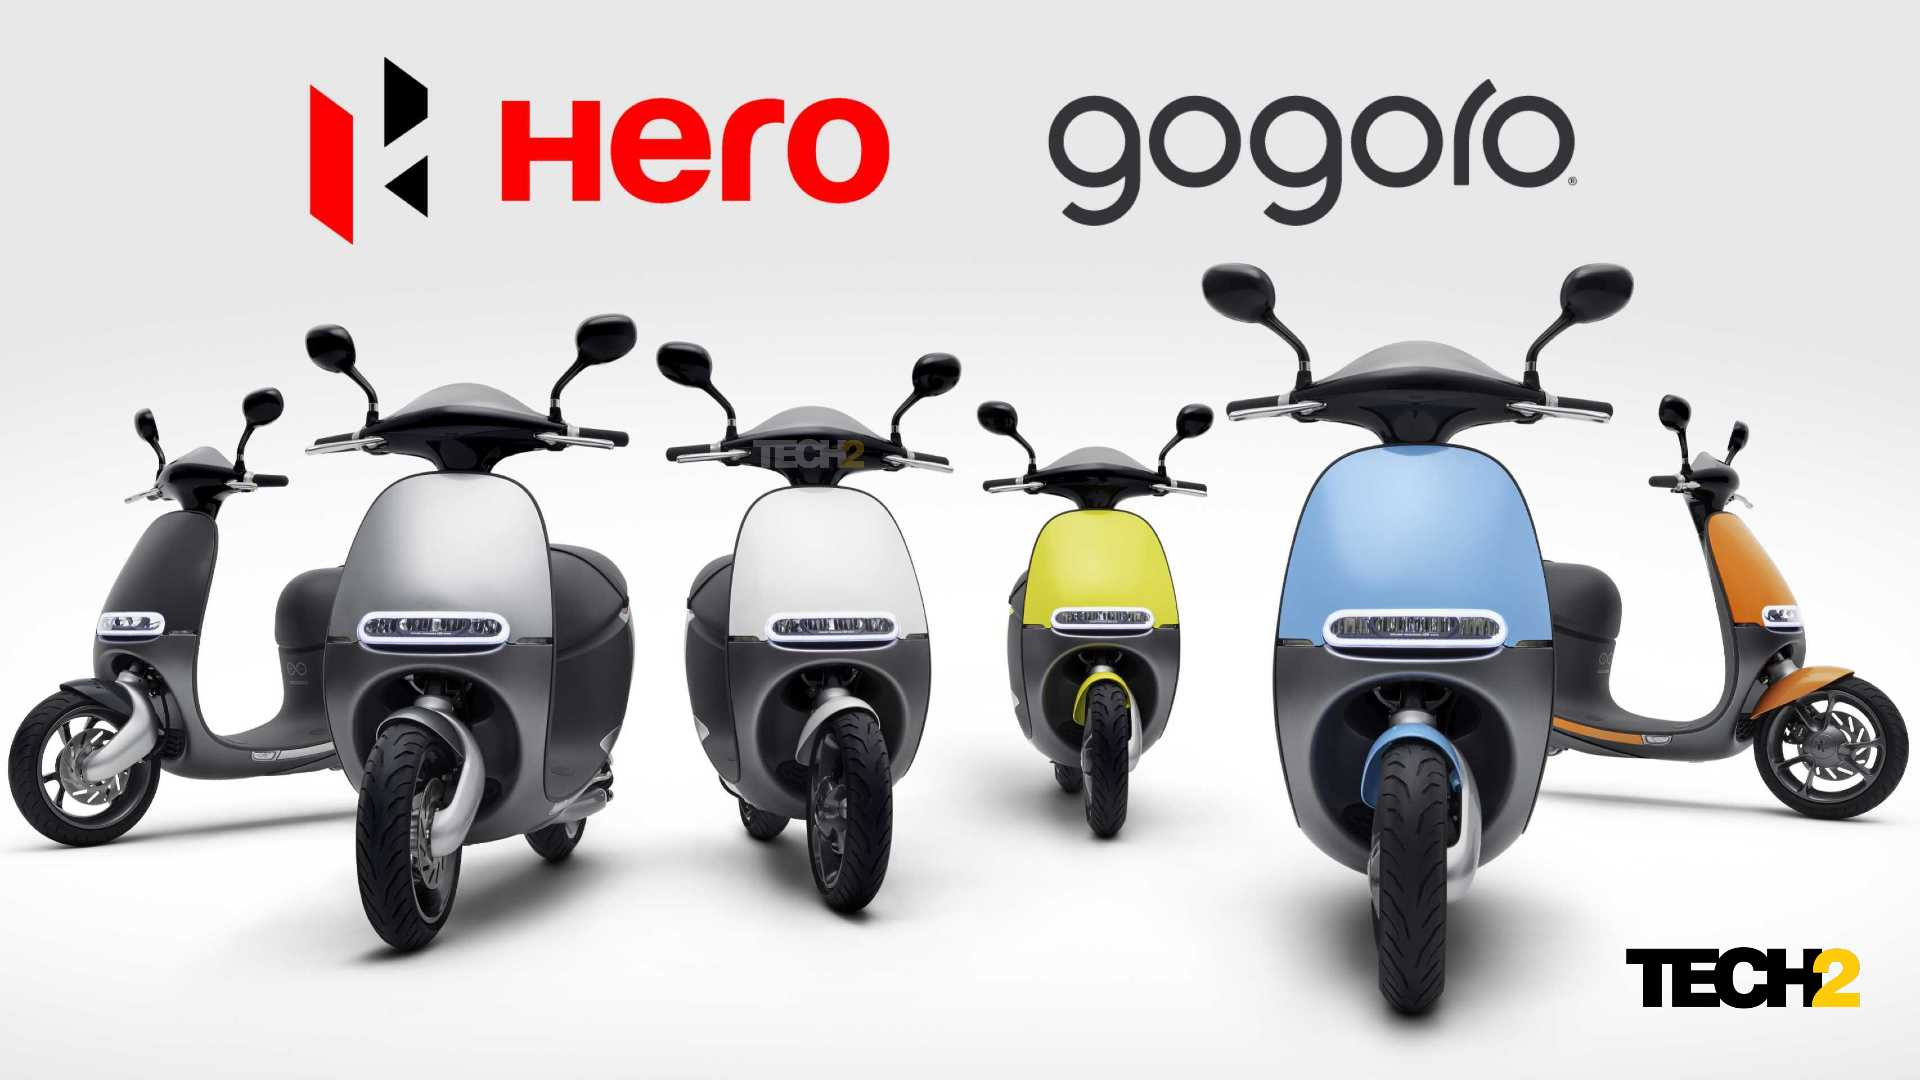 Soon, Hero MotoCorp will launch its own electric two-wheelers based on existing Gogoro models. Image: Gogoro/Tech2